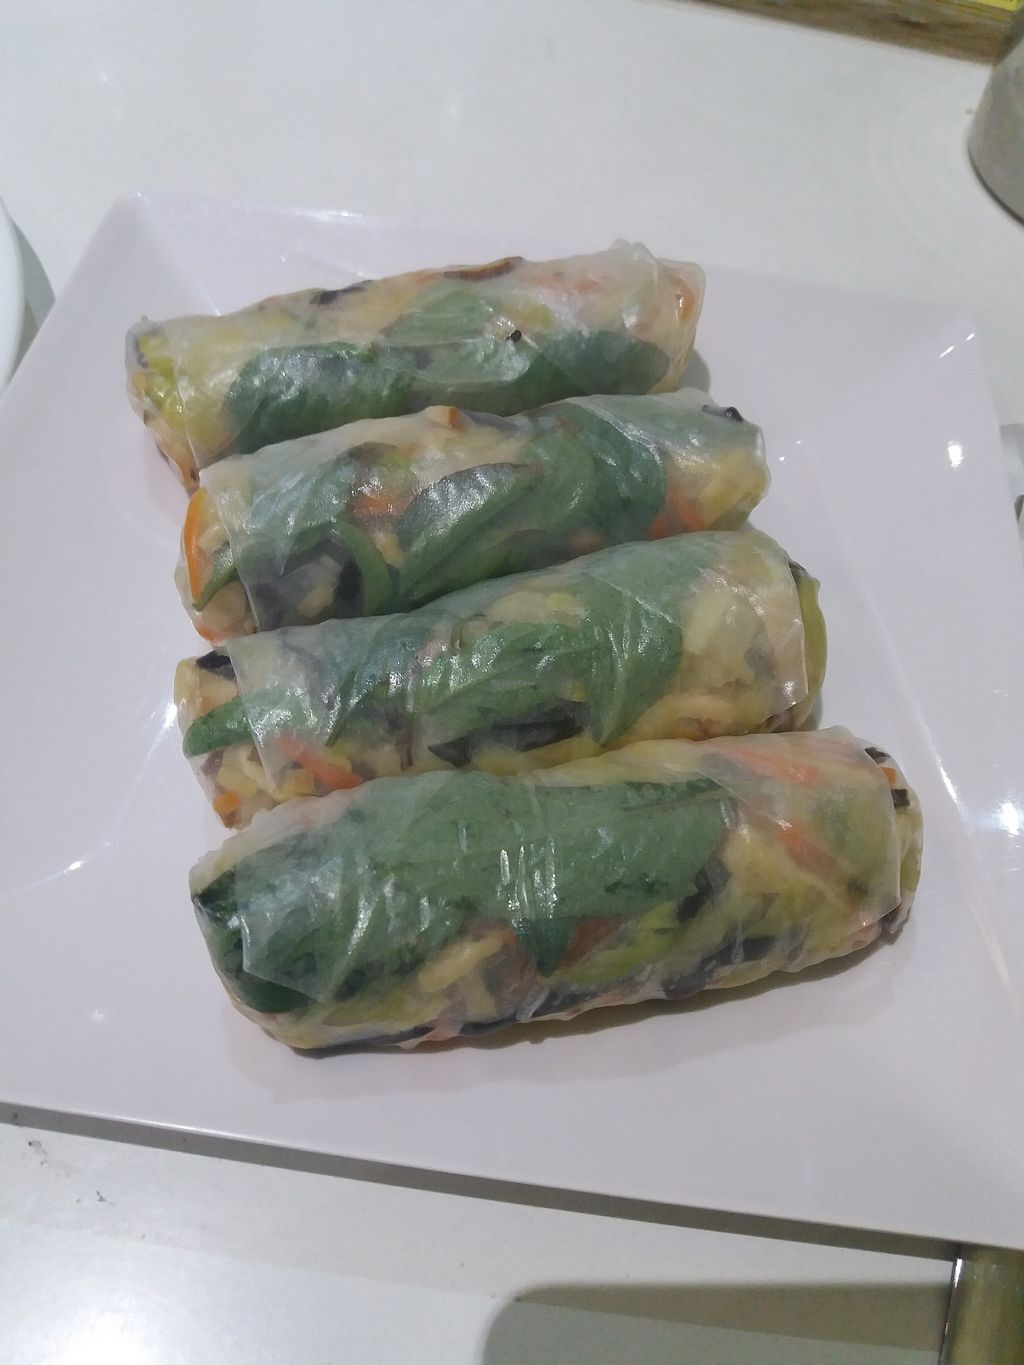 """Photo of Loving Hut  by <a href=""""/members/profile/veganvirtues"""">veganvirtues</a> <br/>Spring rolls <br/> July 23, 2017  - <a href='/contact/abuse/image/11553/283983'>Report</a>"""